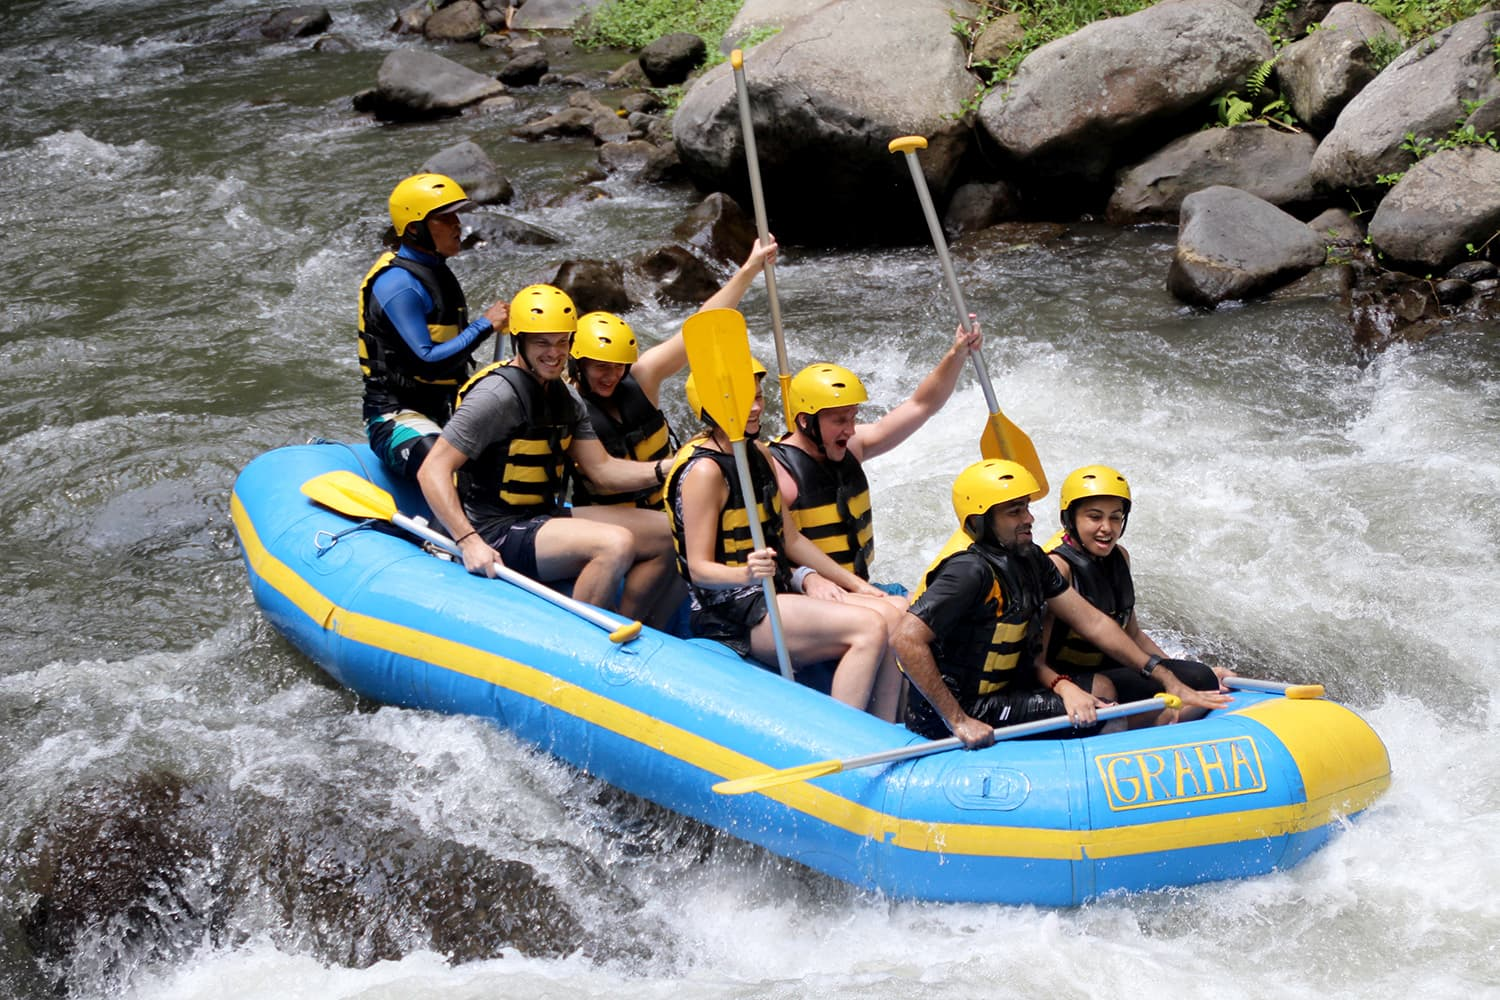 River rafting on Mount Ayung, Indonesia.